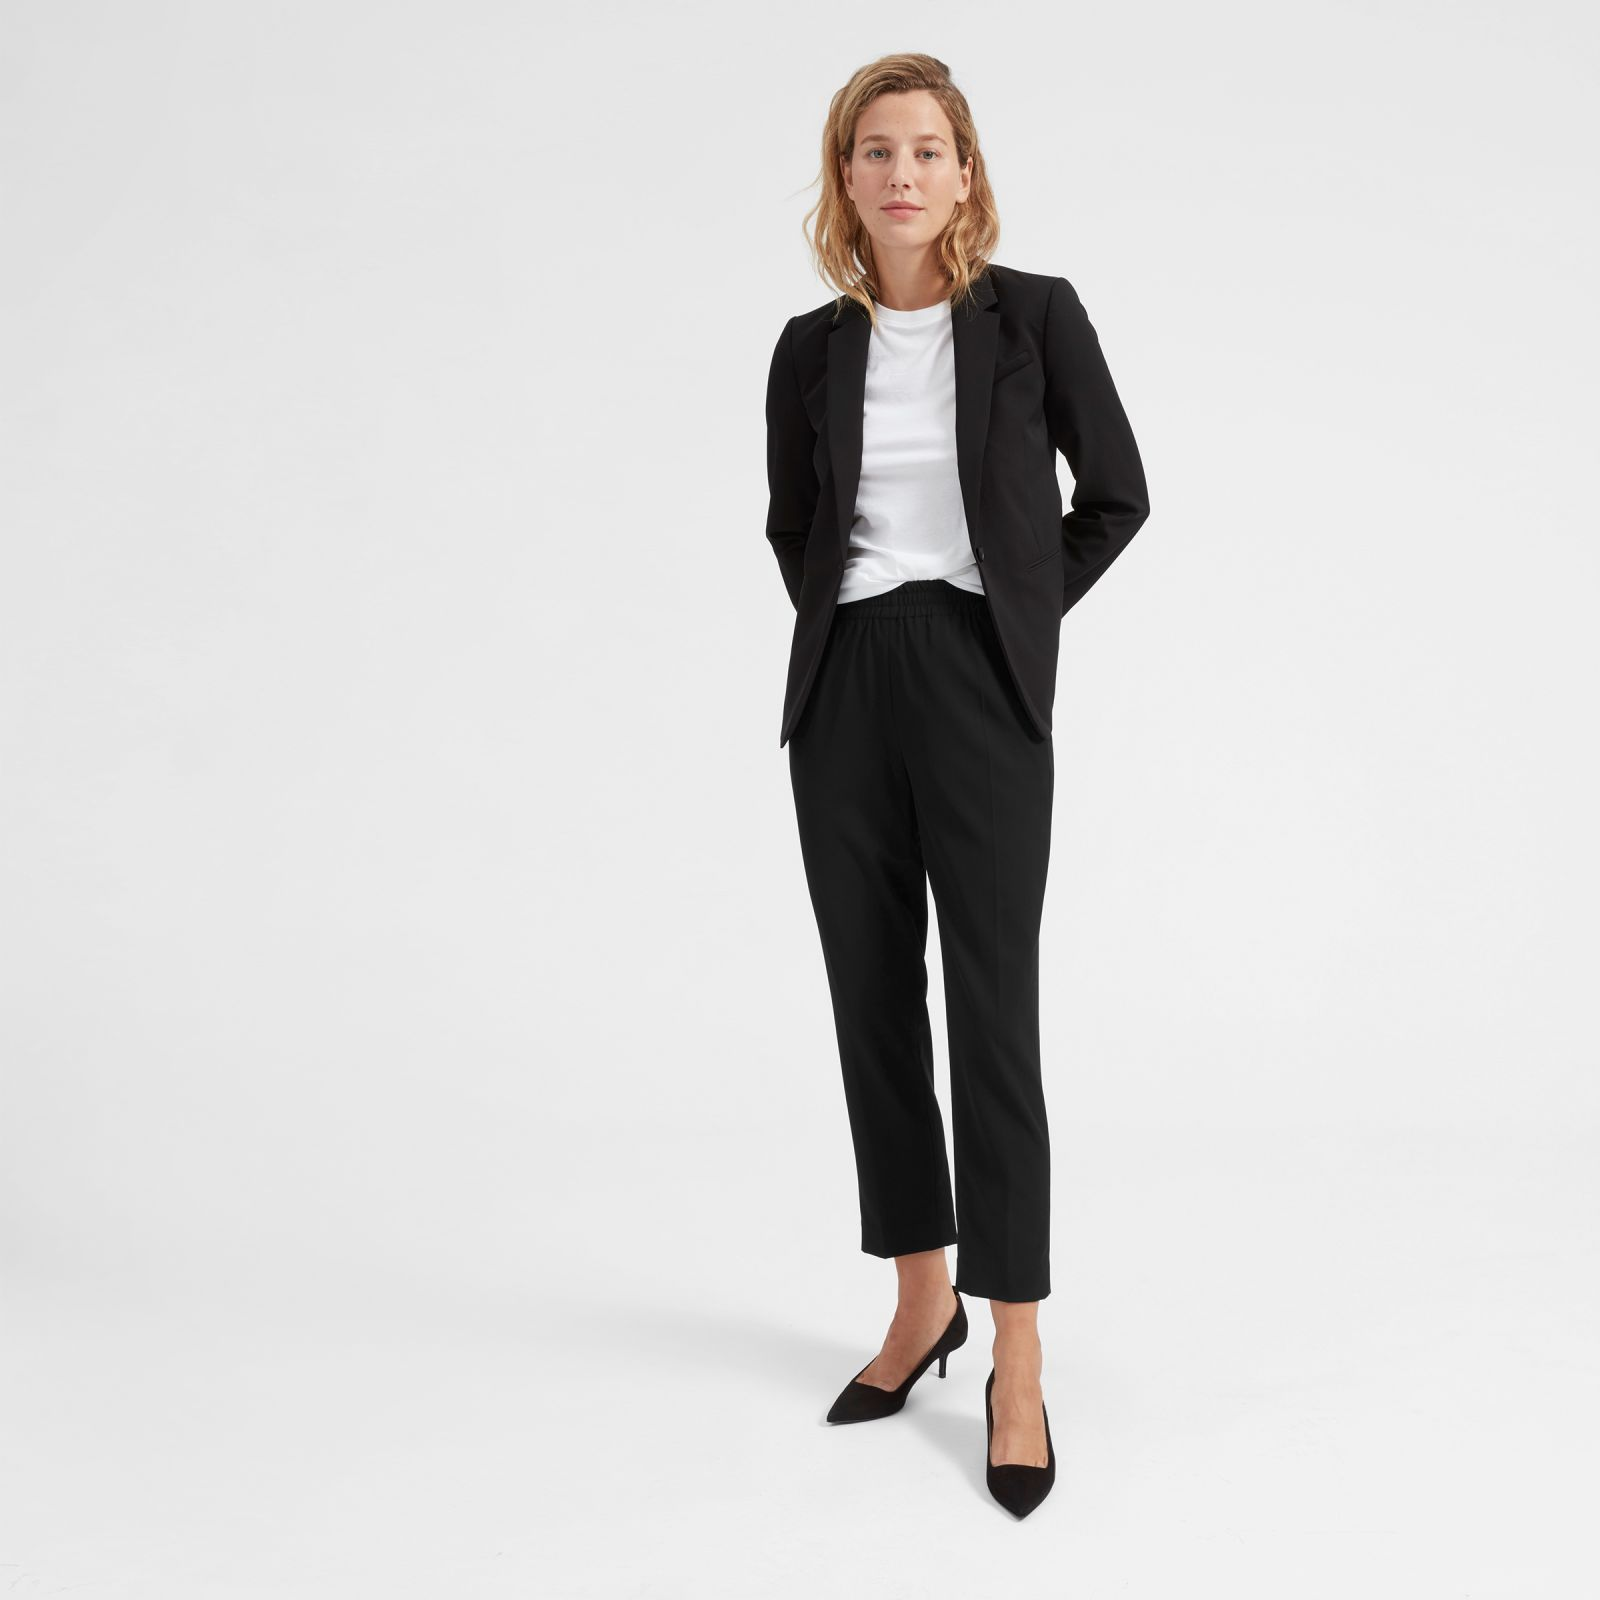 8d3675af9e0 Women s Italian Wool Pull-on Pant by Everlane in Black in 2019 ...